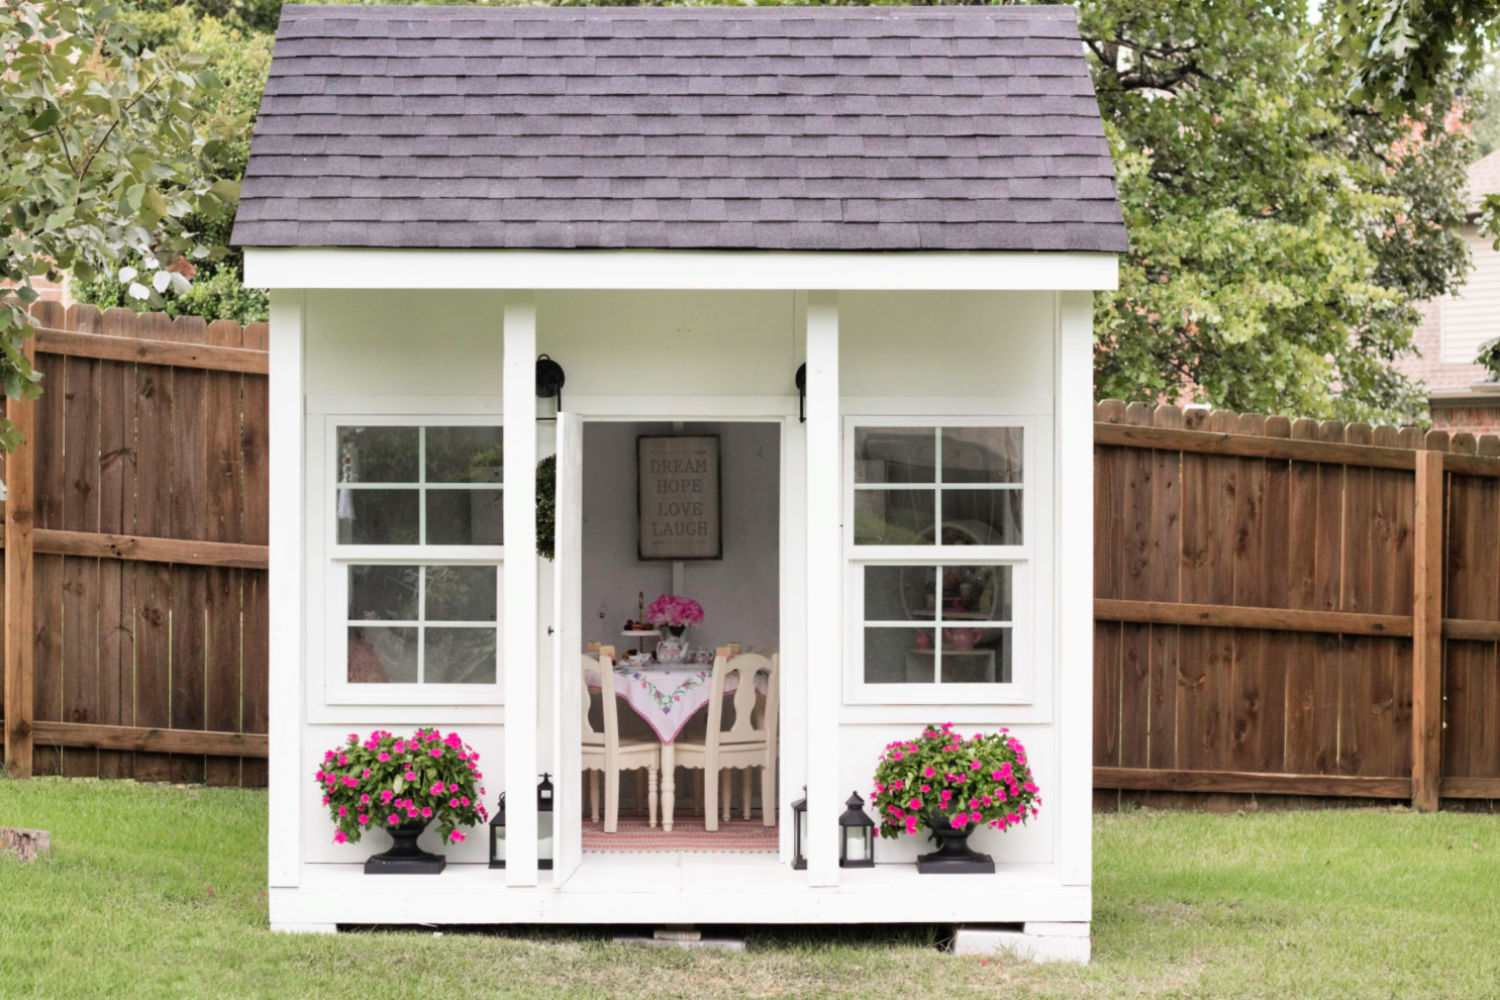 Do It Yourself Home Design: 16 Free Backyard Playhouse Plans For Kids